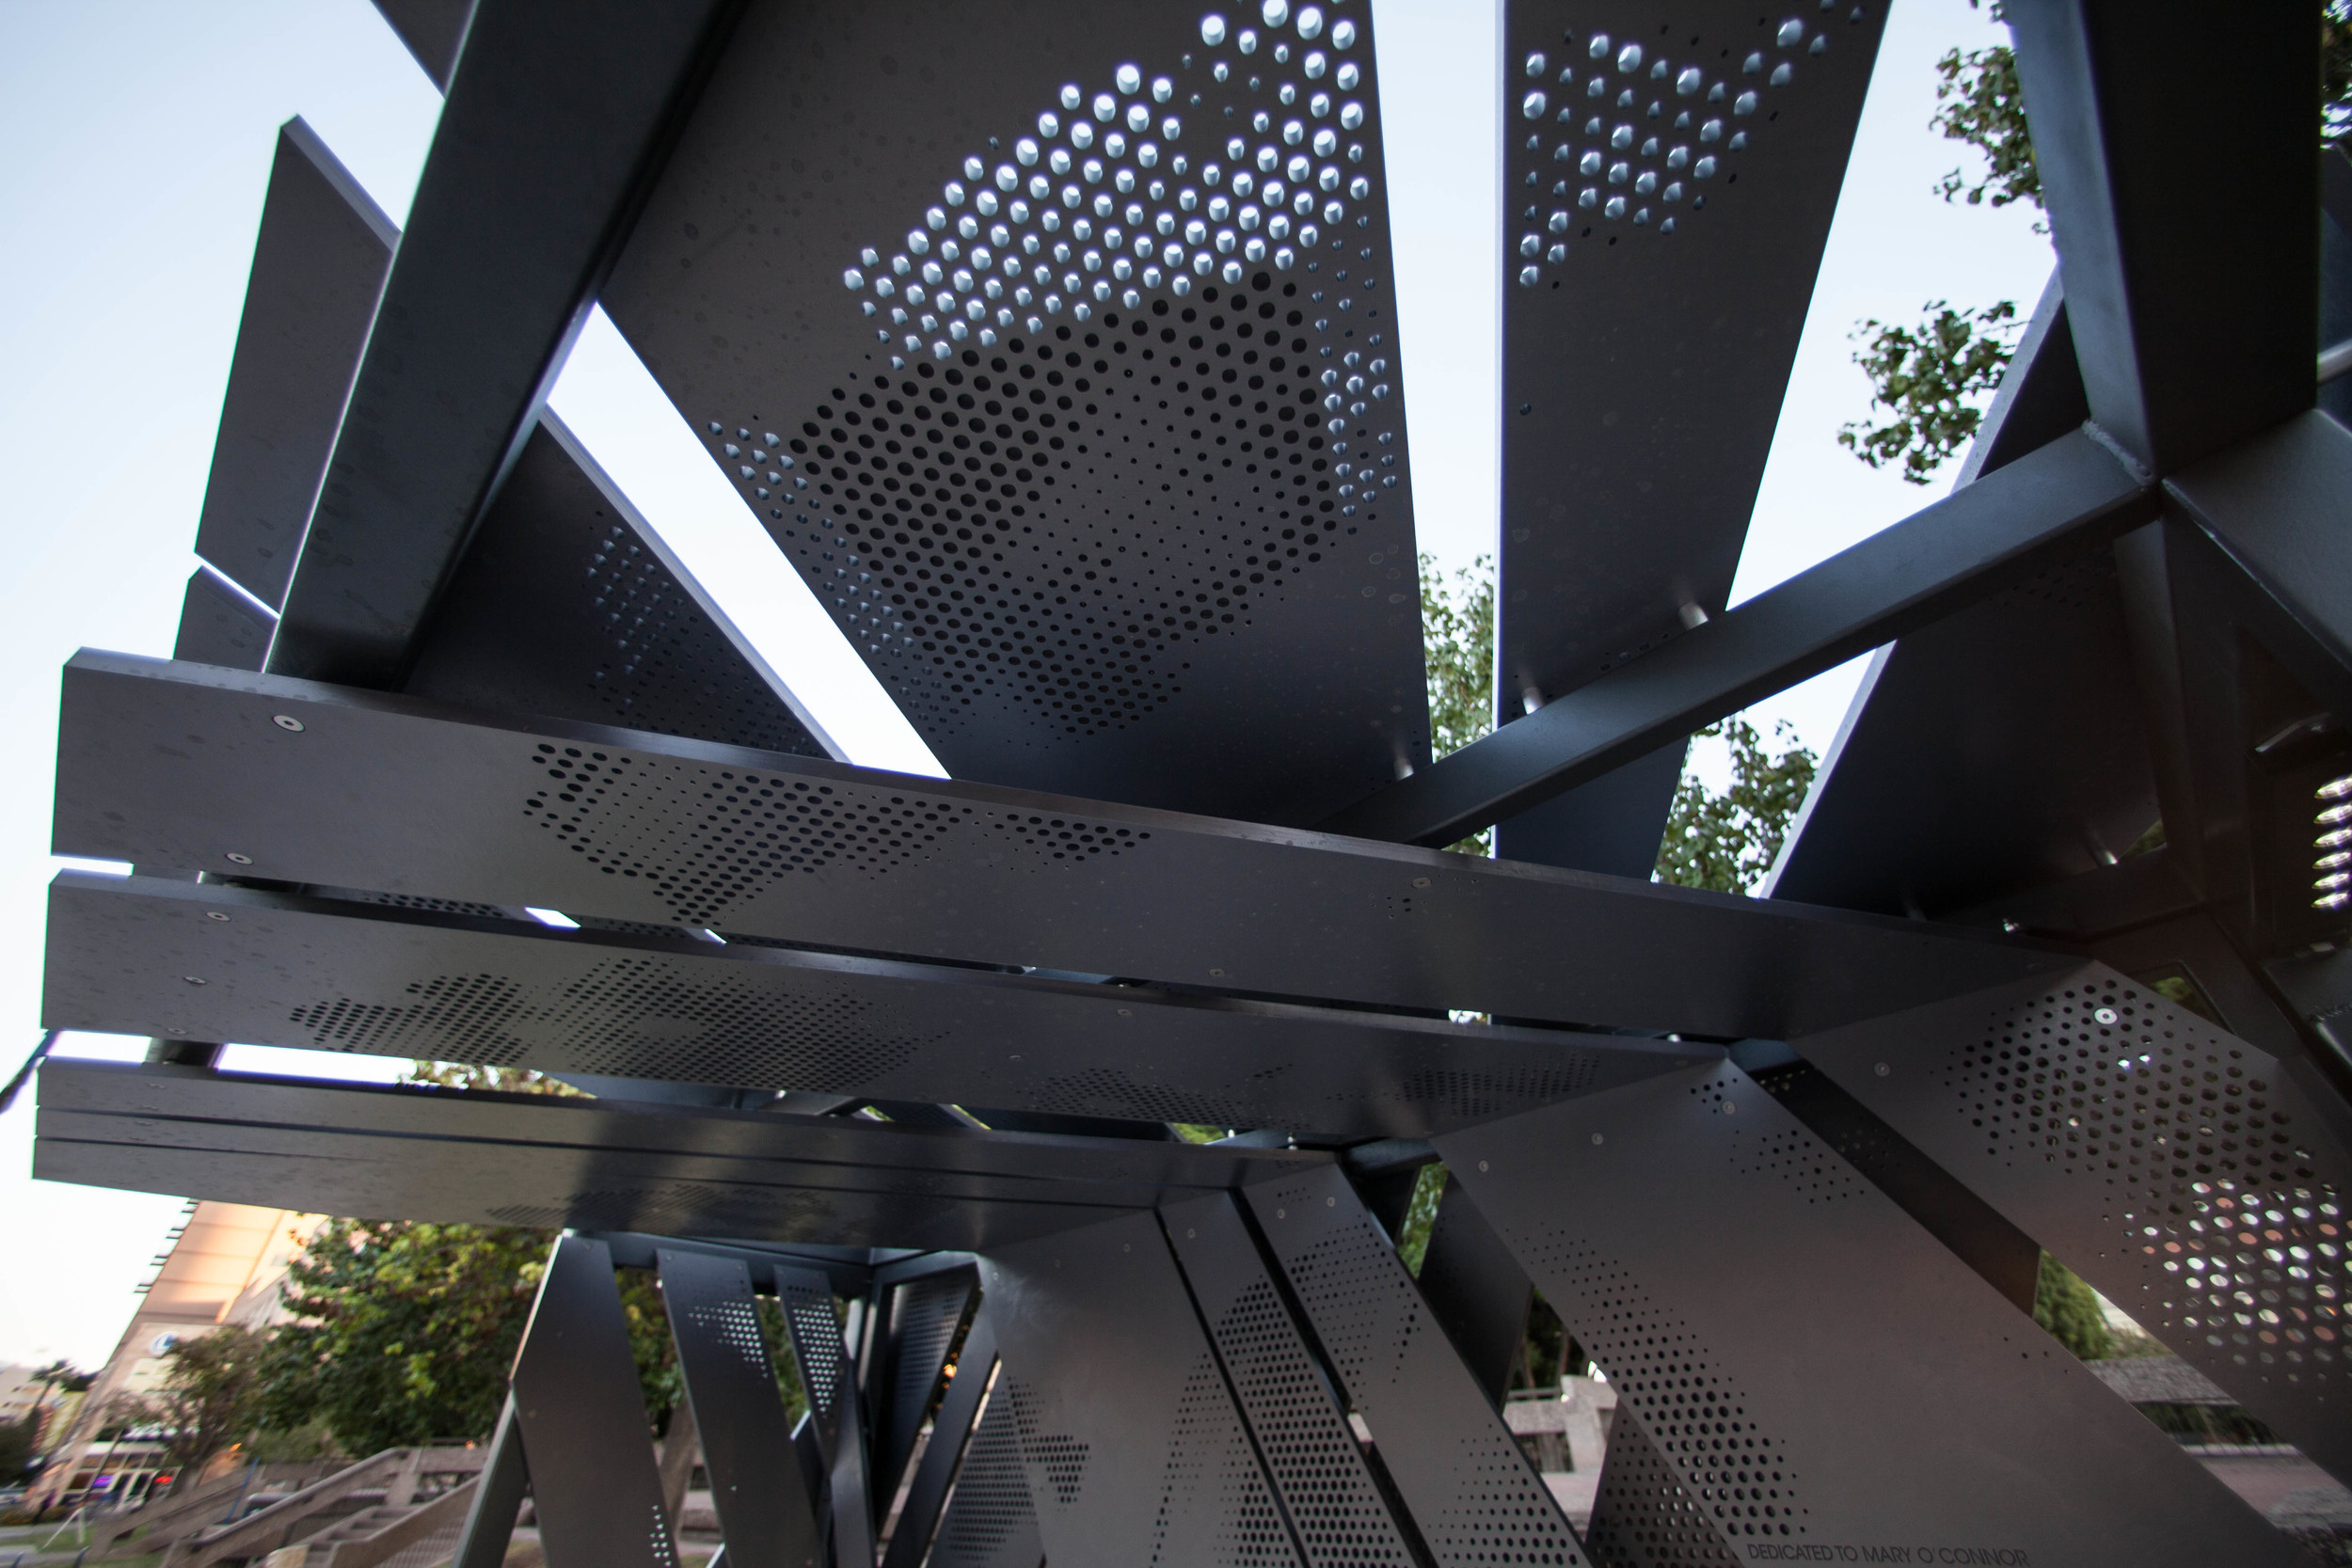 Memorial-transit-shelter-asteriskos-digital-fabrication-parametric-panel-wrapping.jpg